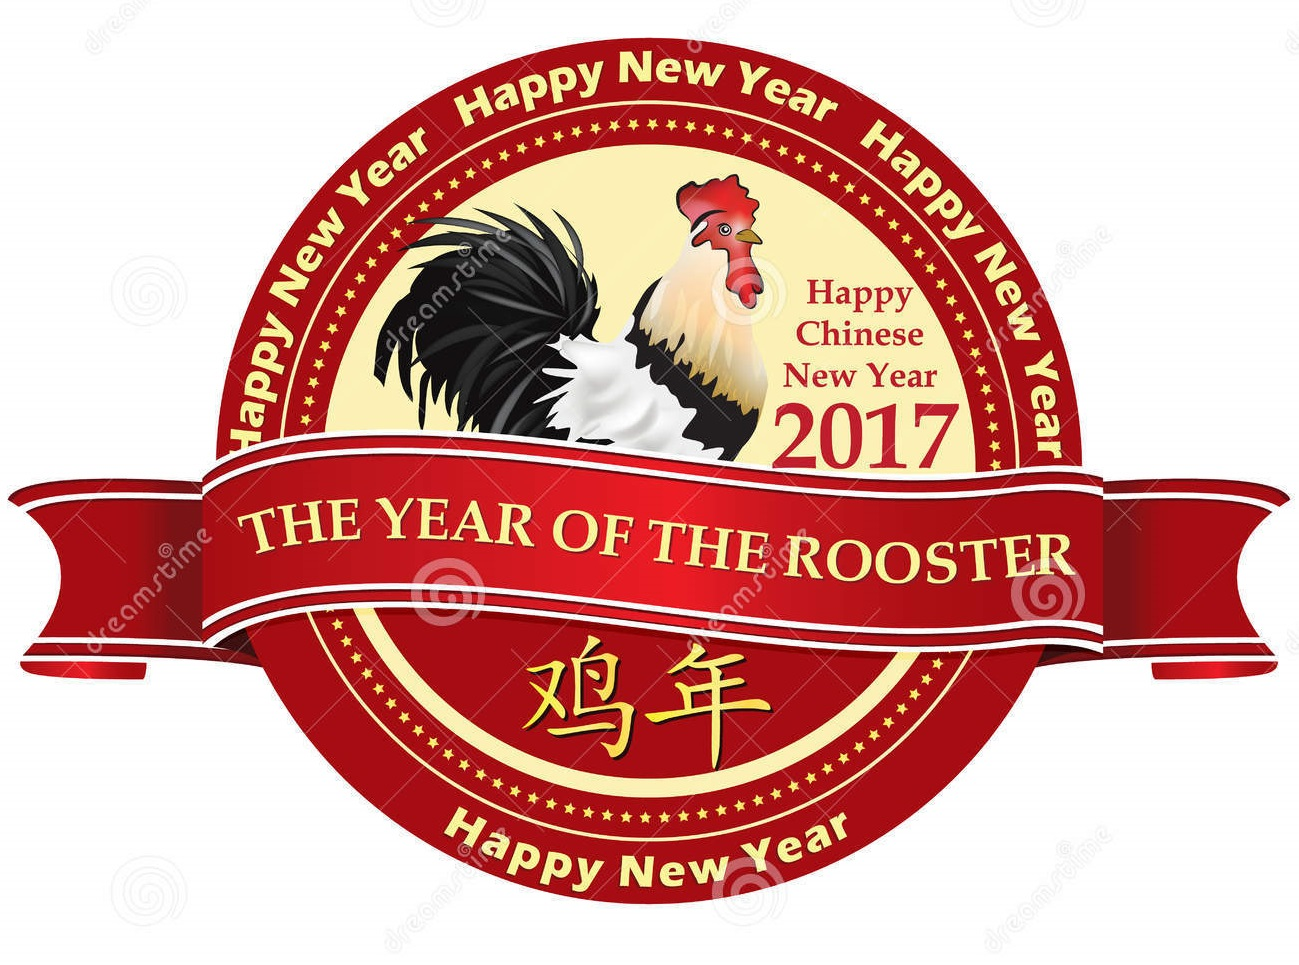 1/28/17 year of the rooster